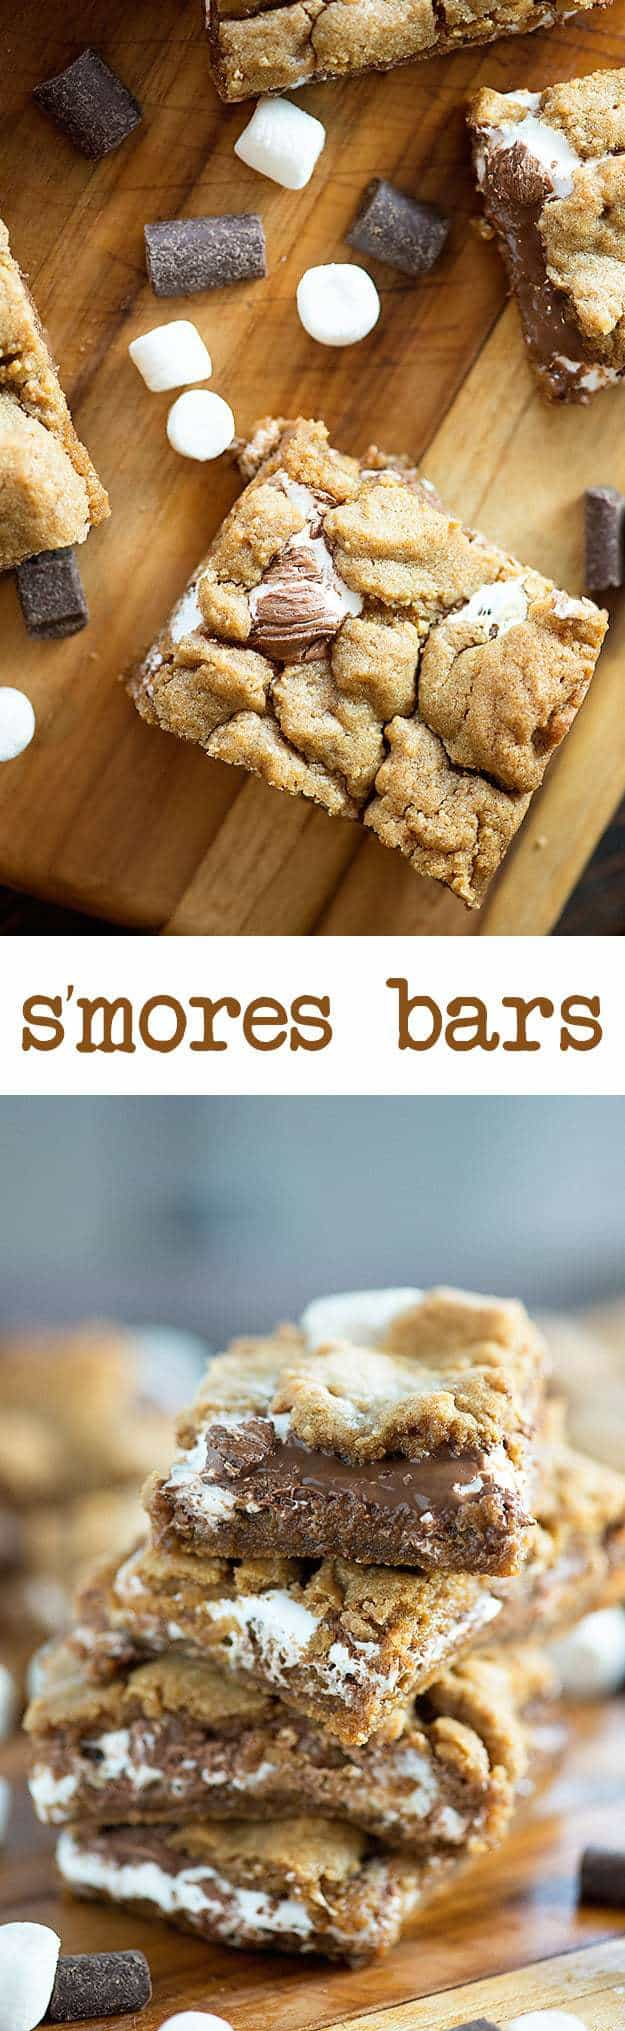 These s'mores bars are ooey gooey delicious! They're filled with Fluff and Nutella!